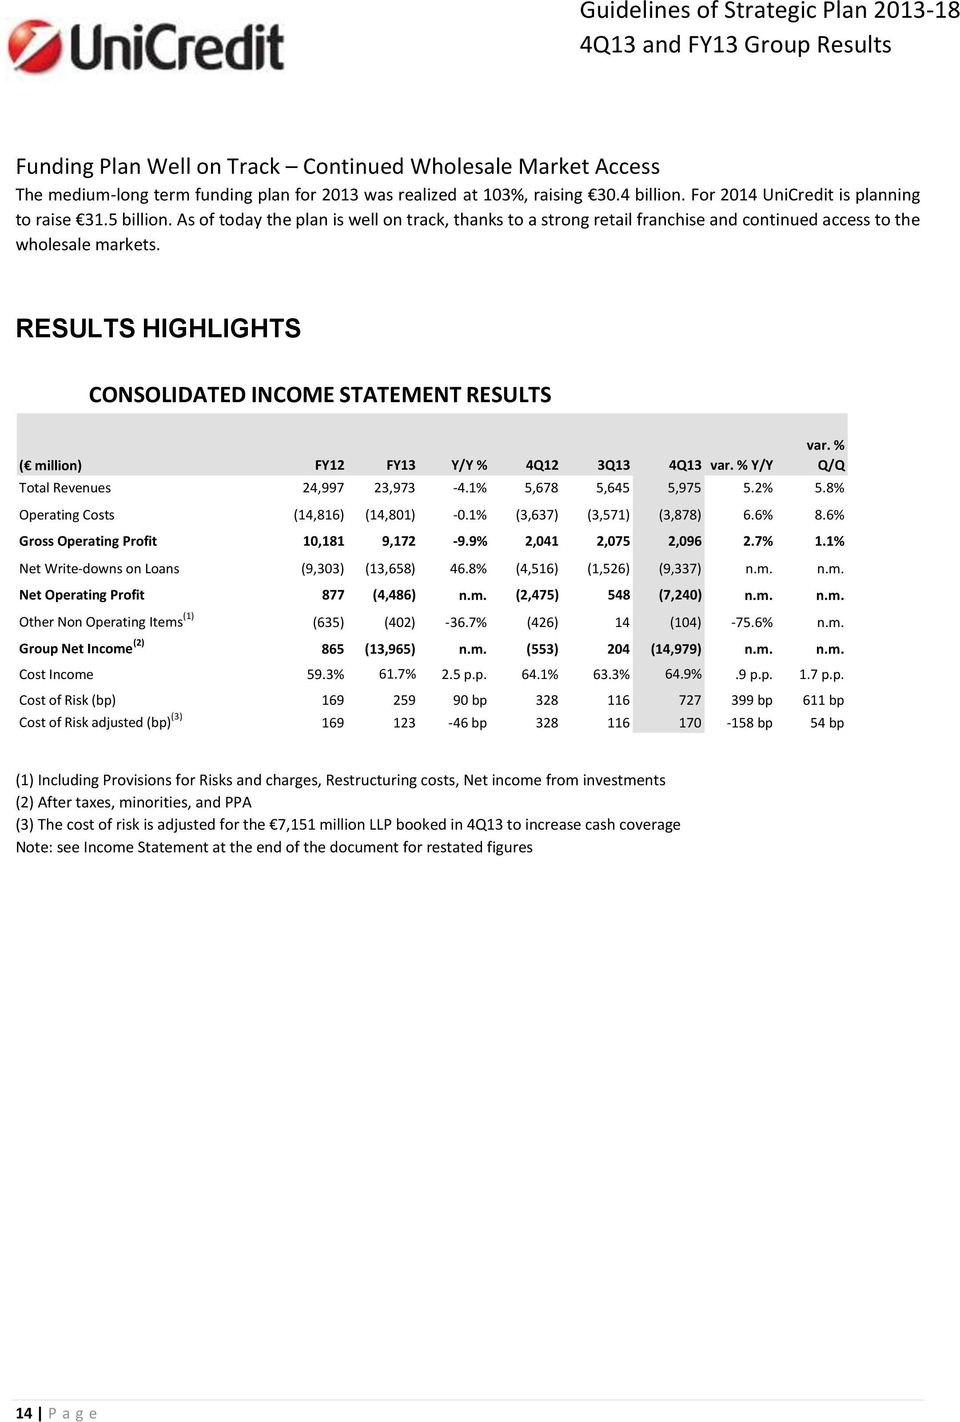 RESULTS HIGHLIGHTS CONSOLIDATED INCOME STATEMENT RESULTS ( million) FY12 FY13 Y/Y % 4Q12 3Q13 4Q13 var. % Y/Y Total Revenues 24,997 23,973-4.1% 5,678 5,645 5,975 5.2% 5.